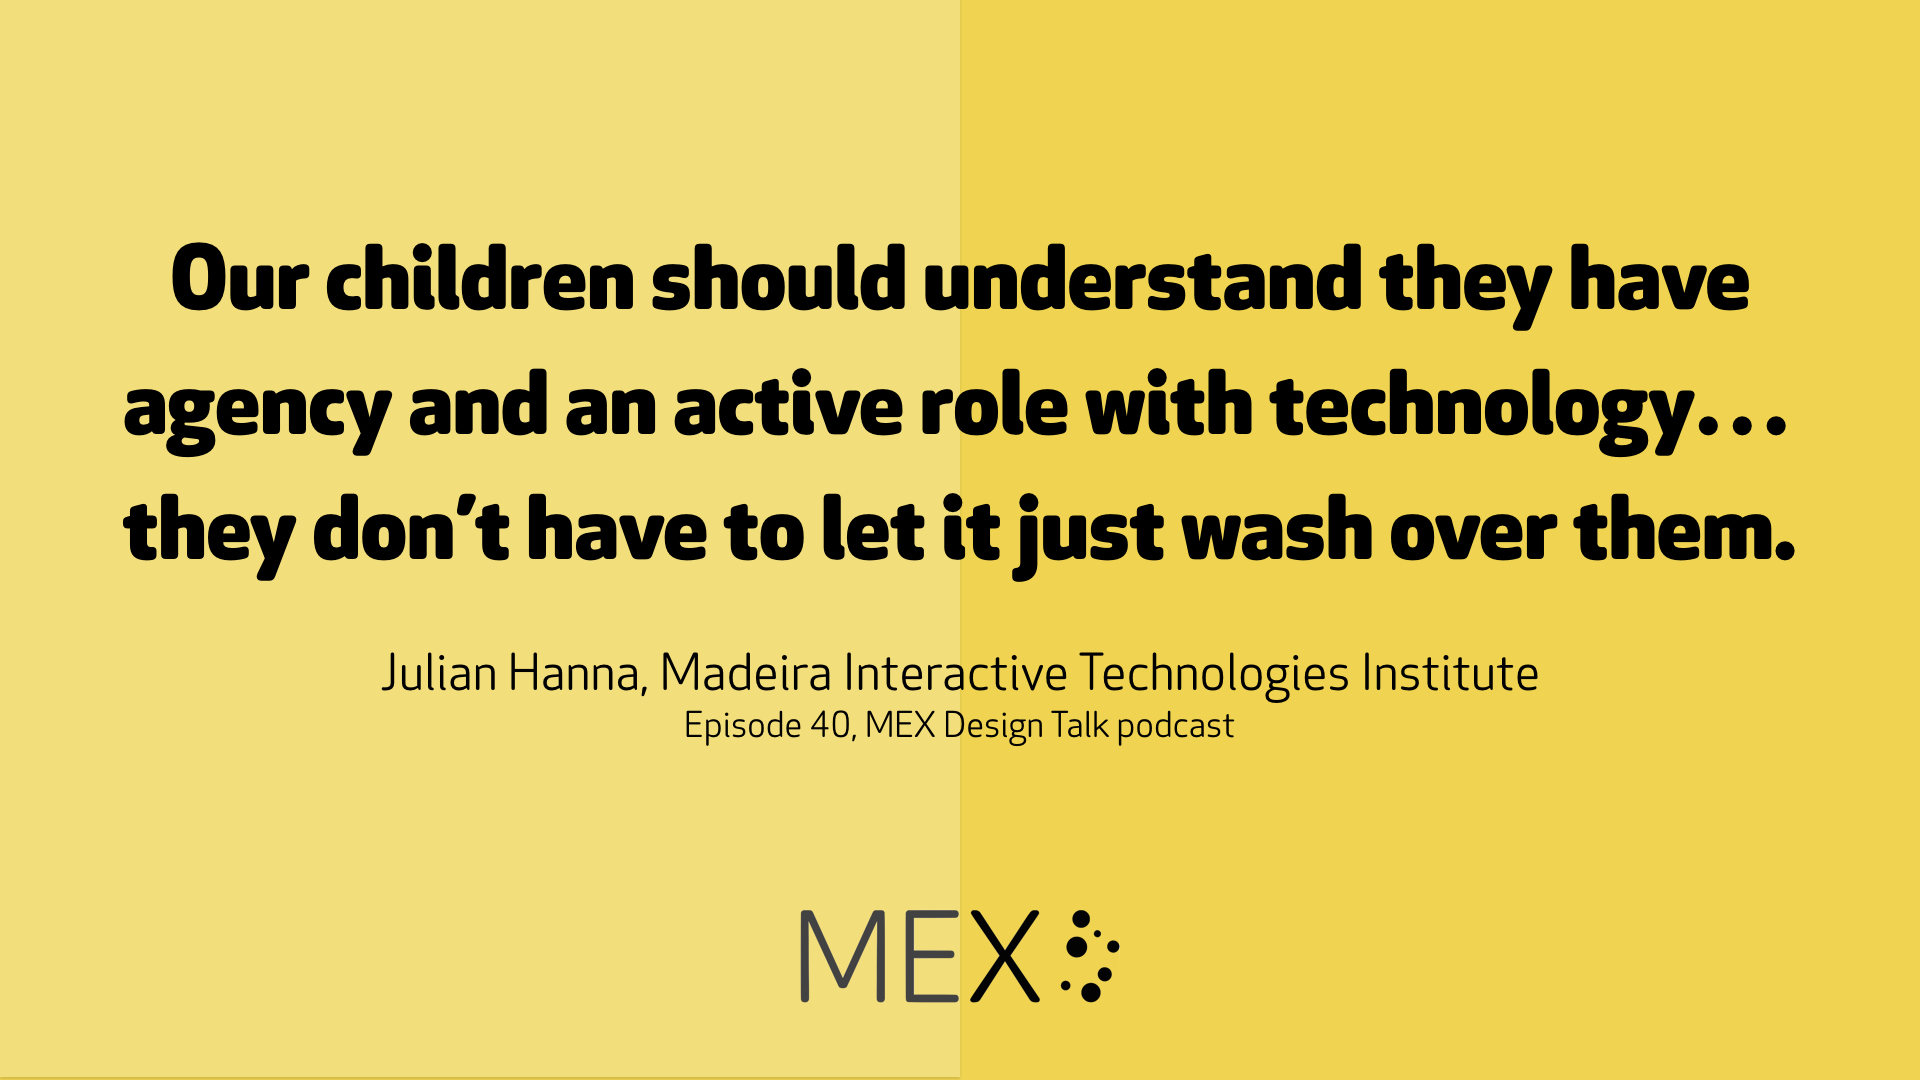 Our children should understand they have agency and an active role with technology…they don't have to let it just wash over them. Julian Hanna, Madeira Interactive Technologies Institute Episode 40, MEX Design Talk podcast